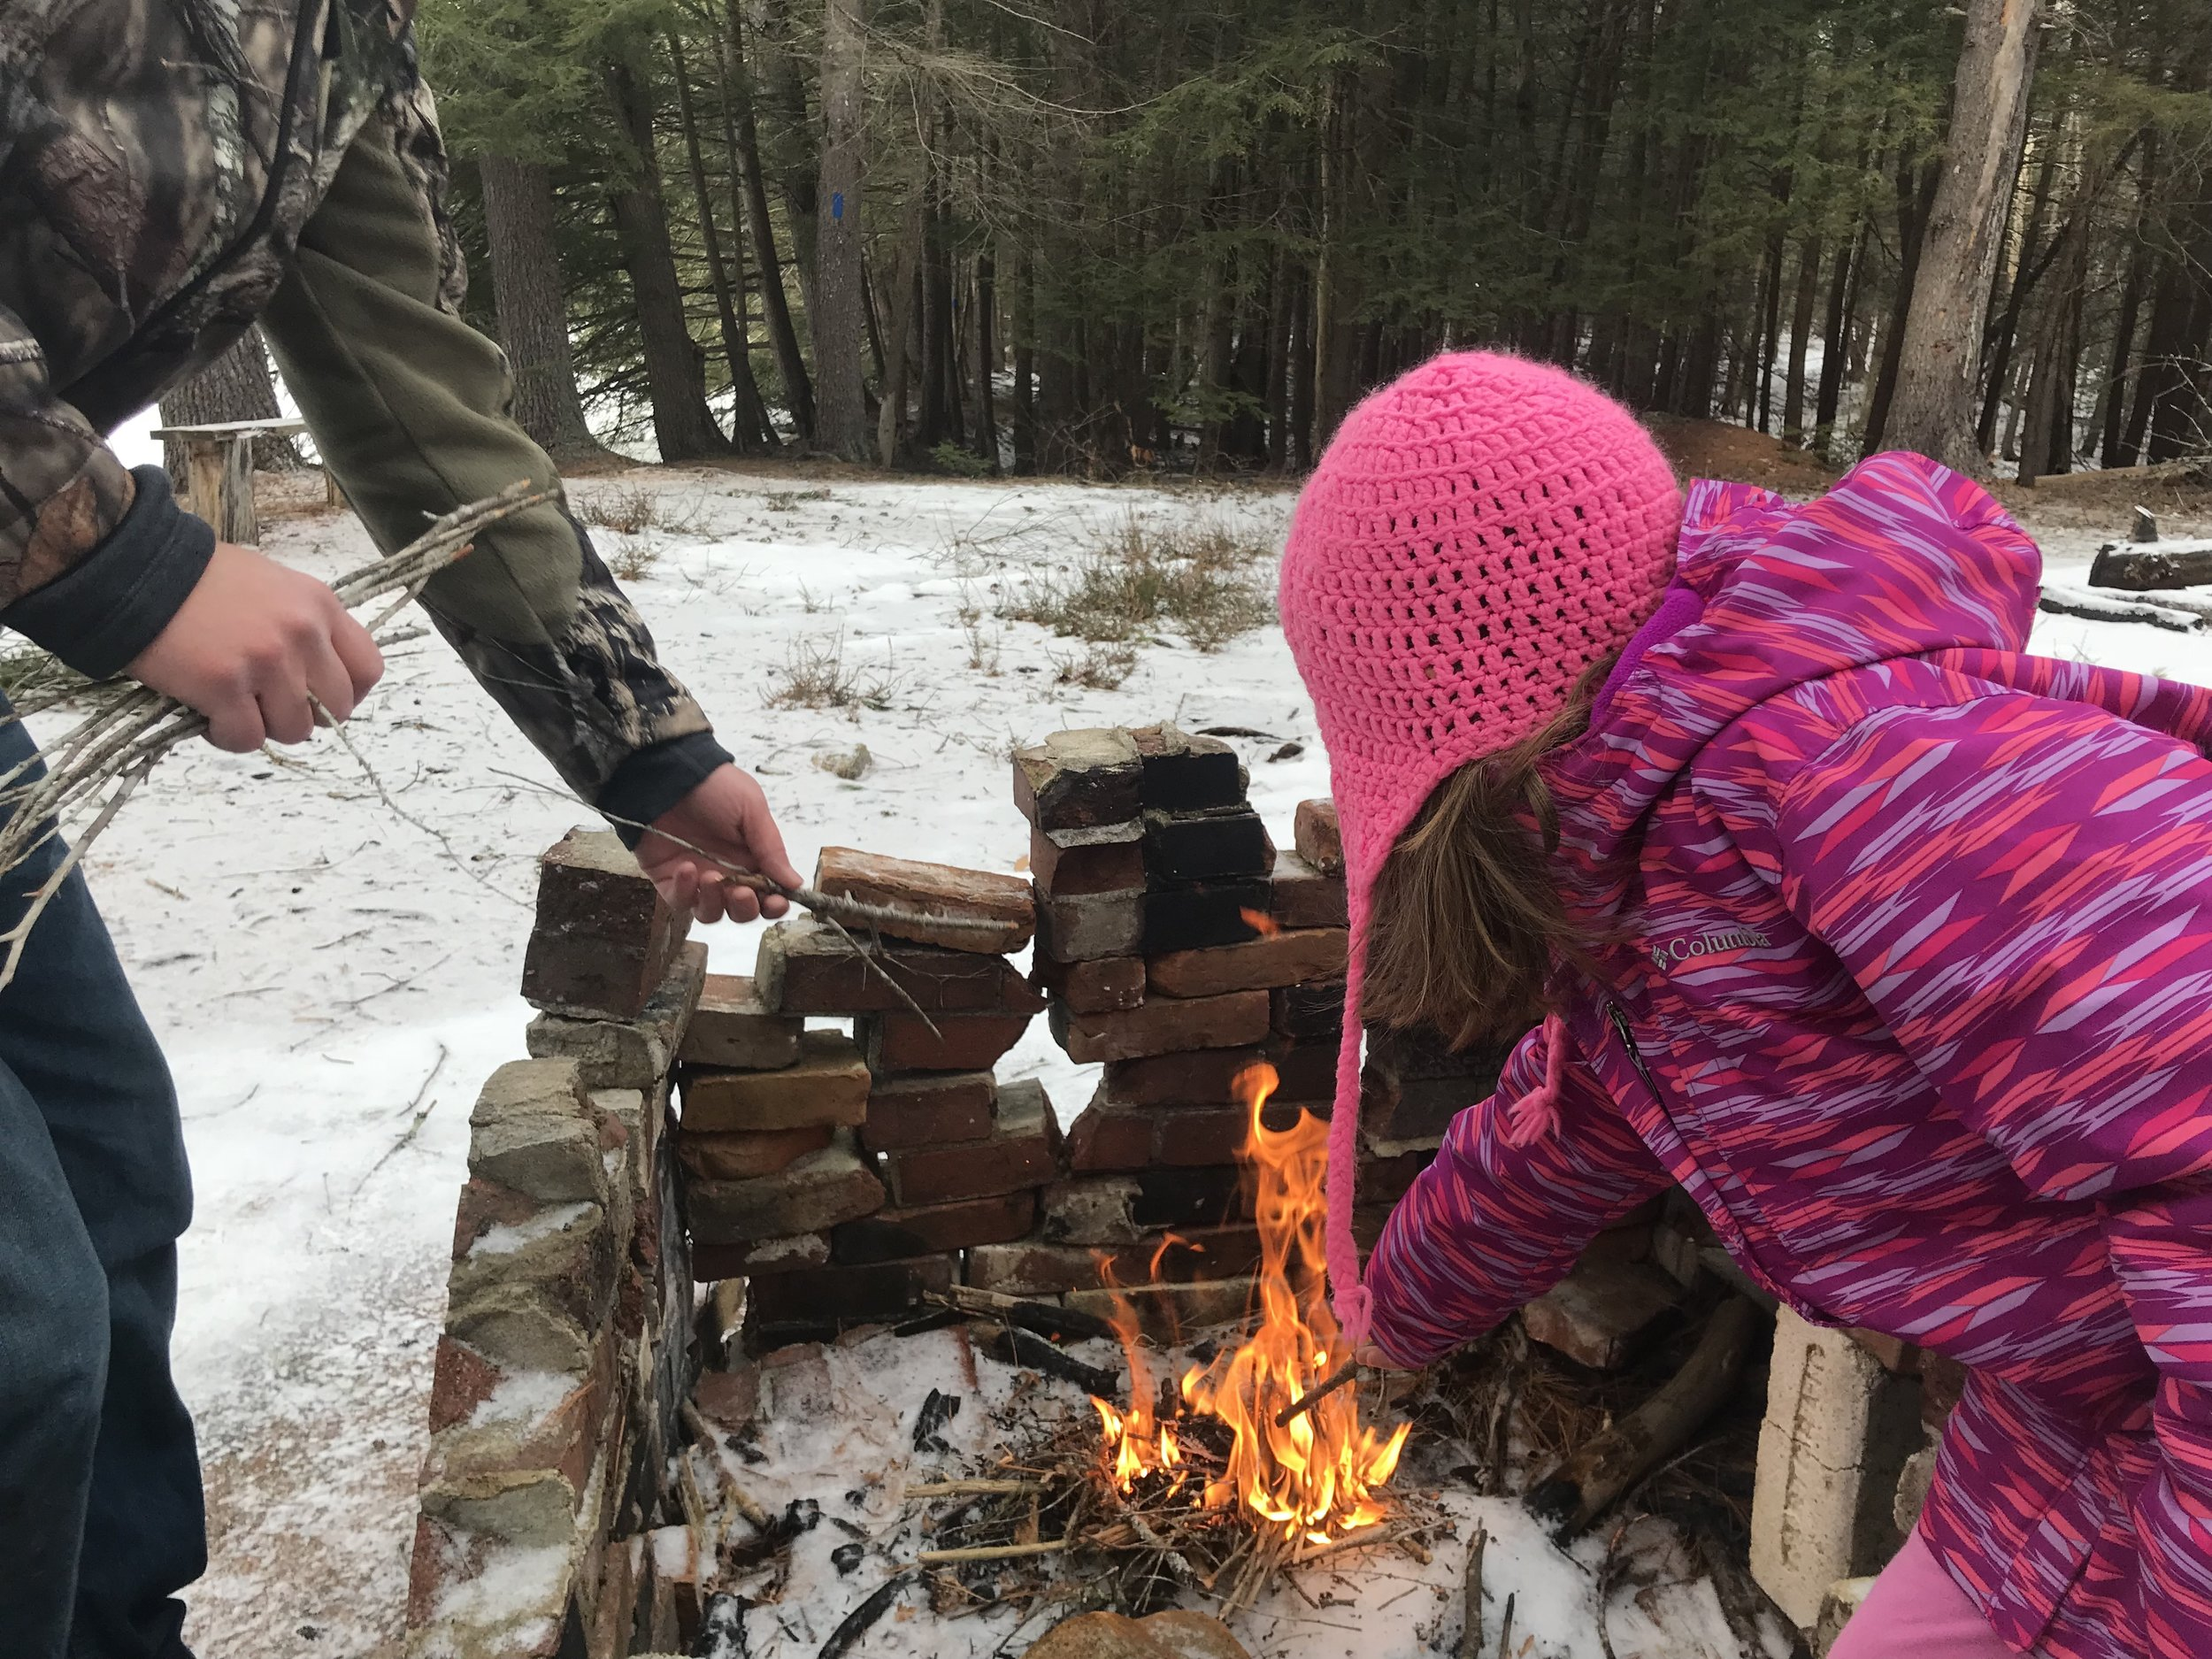 Working on our fire skills after a hike into the woods.